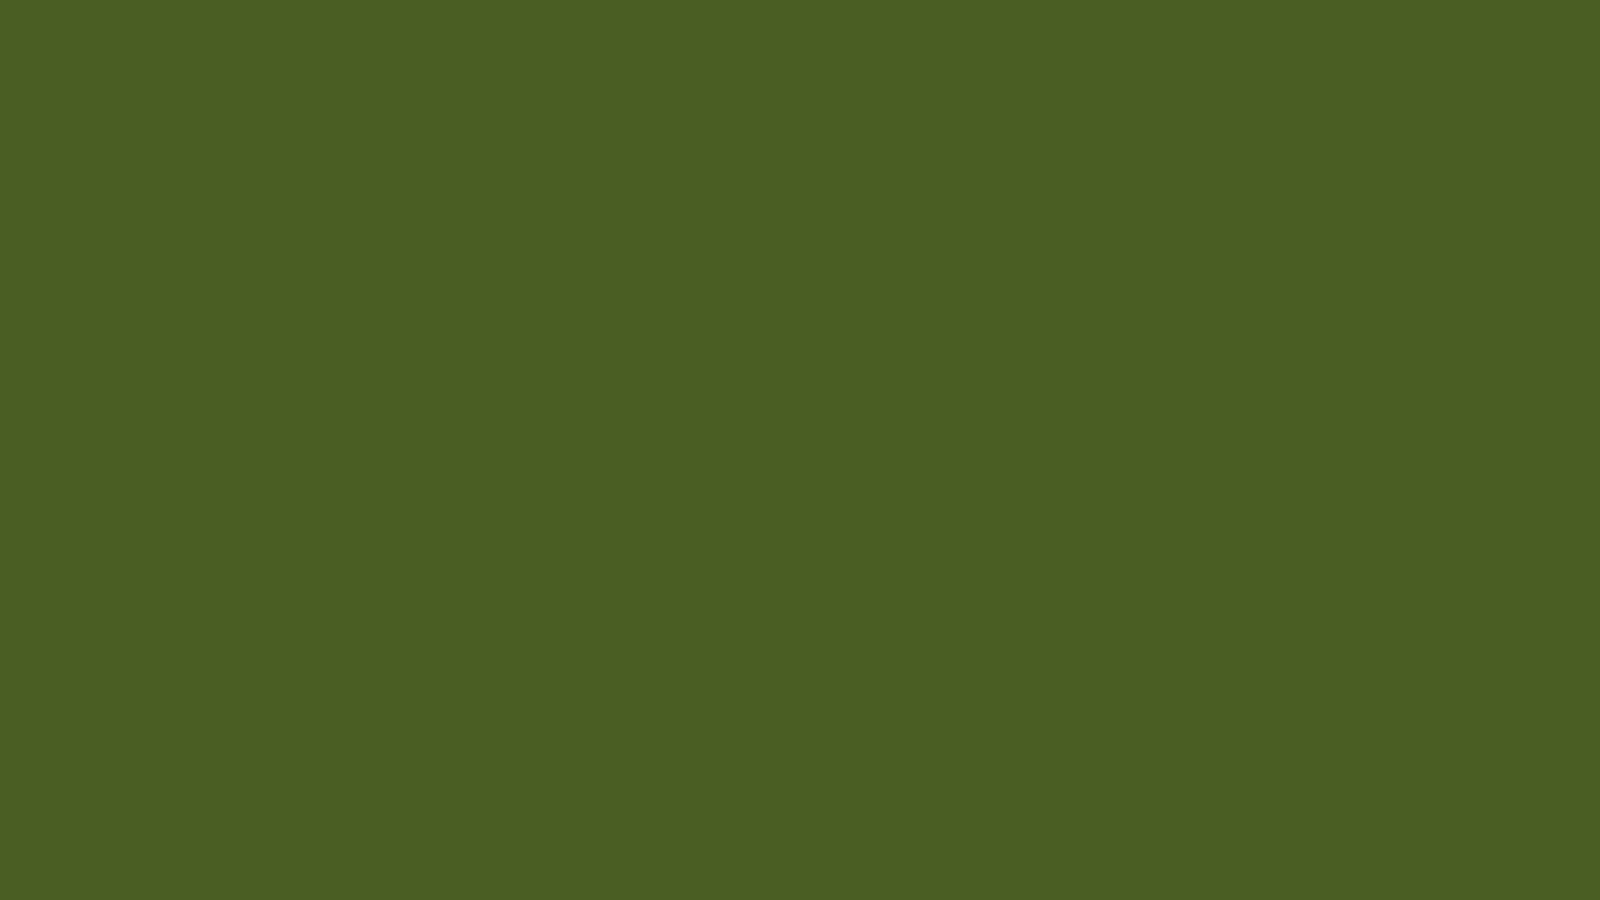 1600x900 Dark Moss Green Solid Color Background